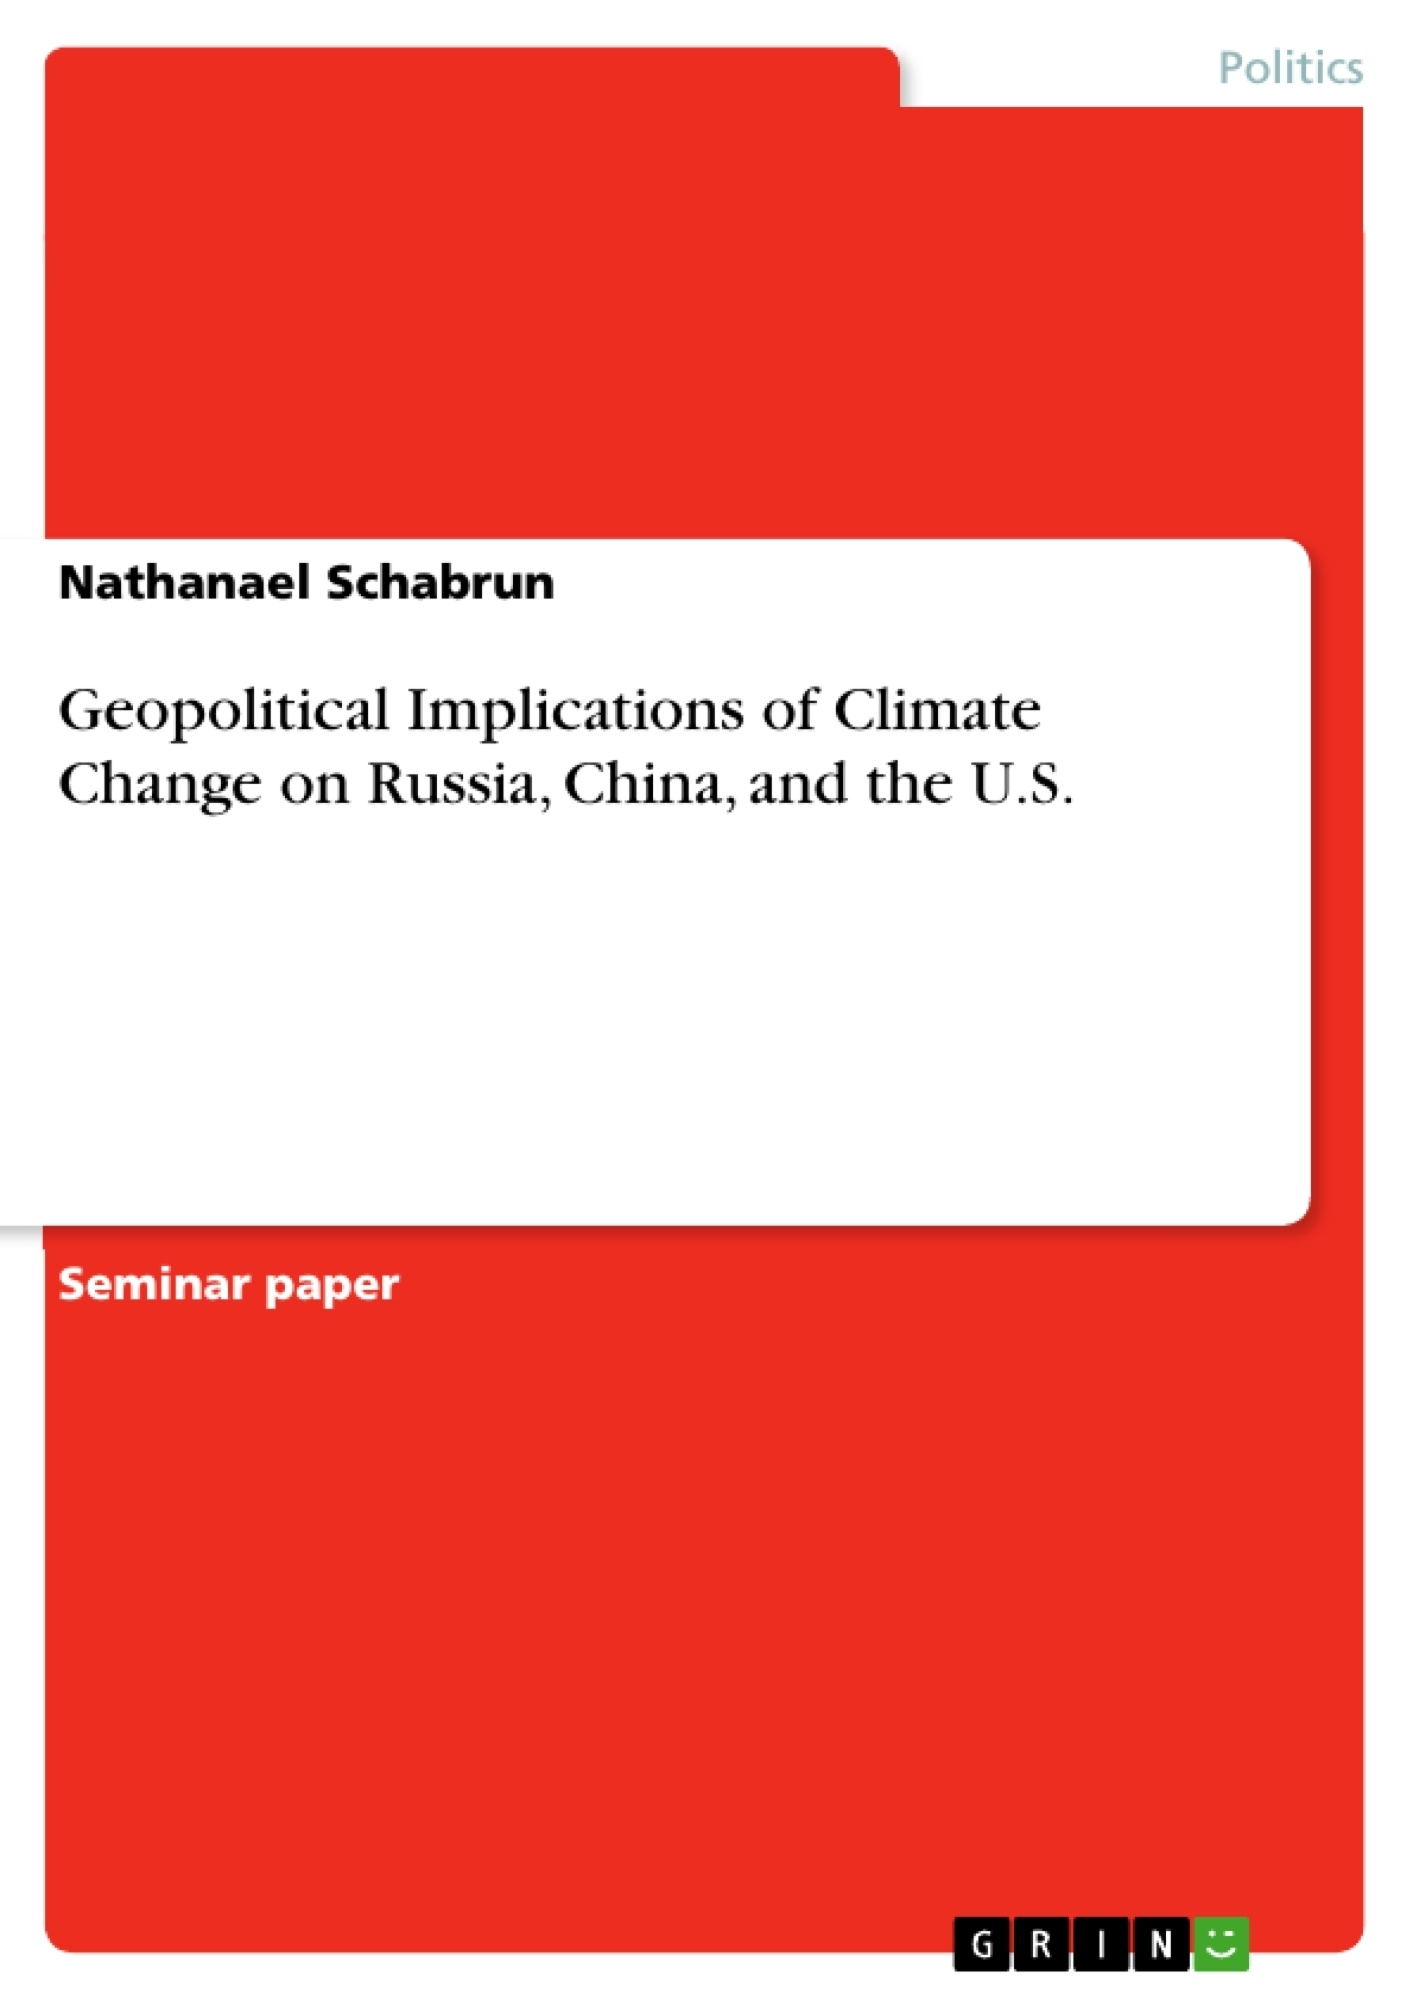 Title: Geopolitical Implications of Climate Change on Russia, China, and the U.S.